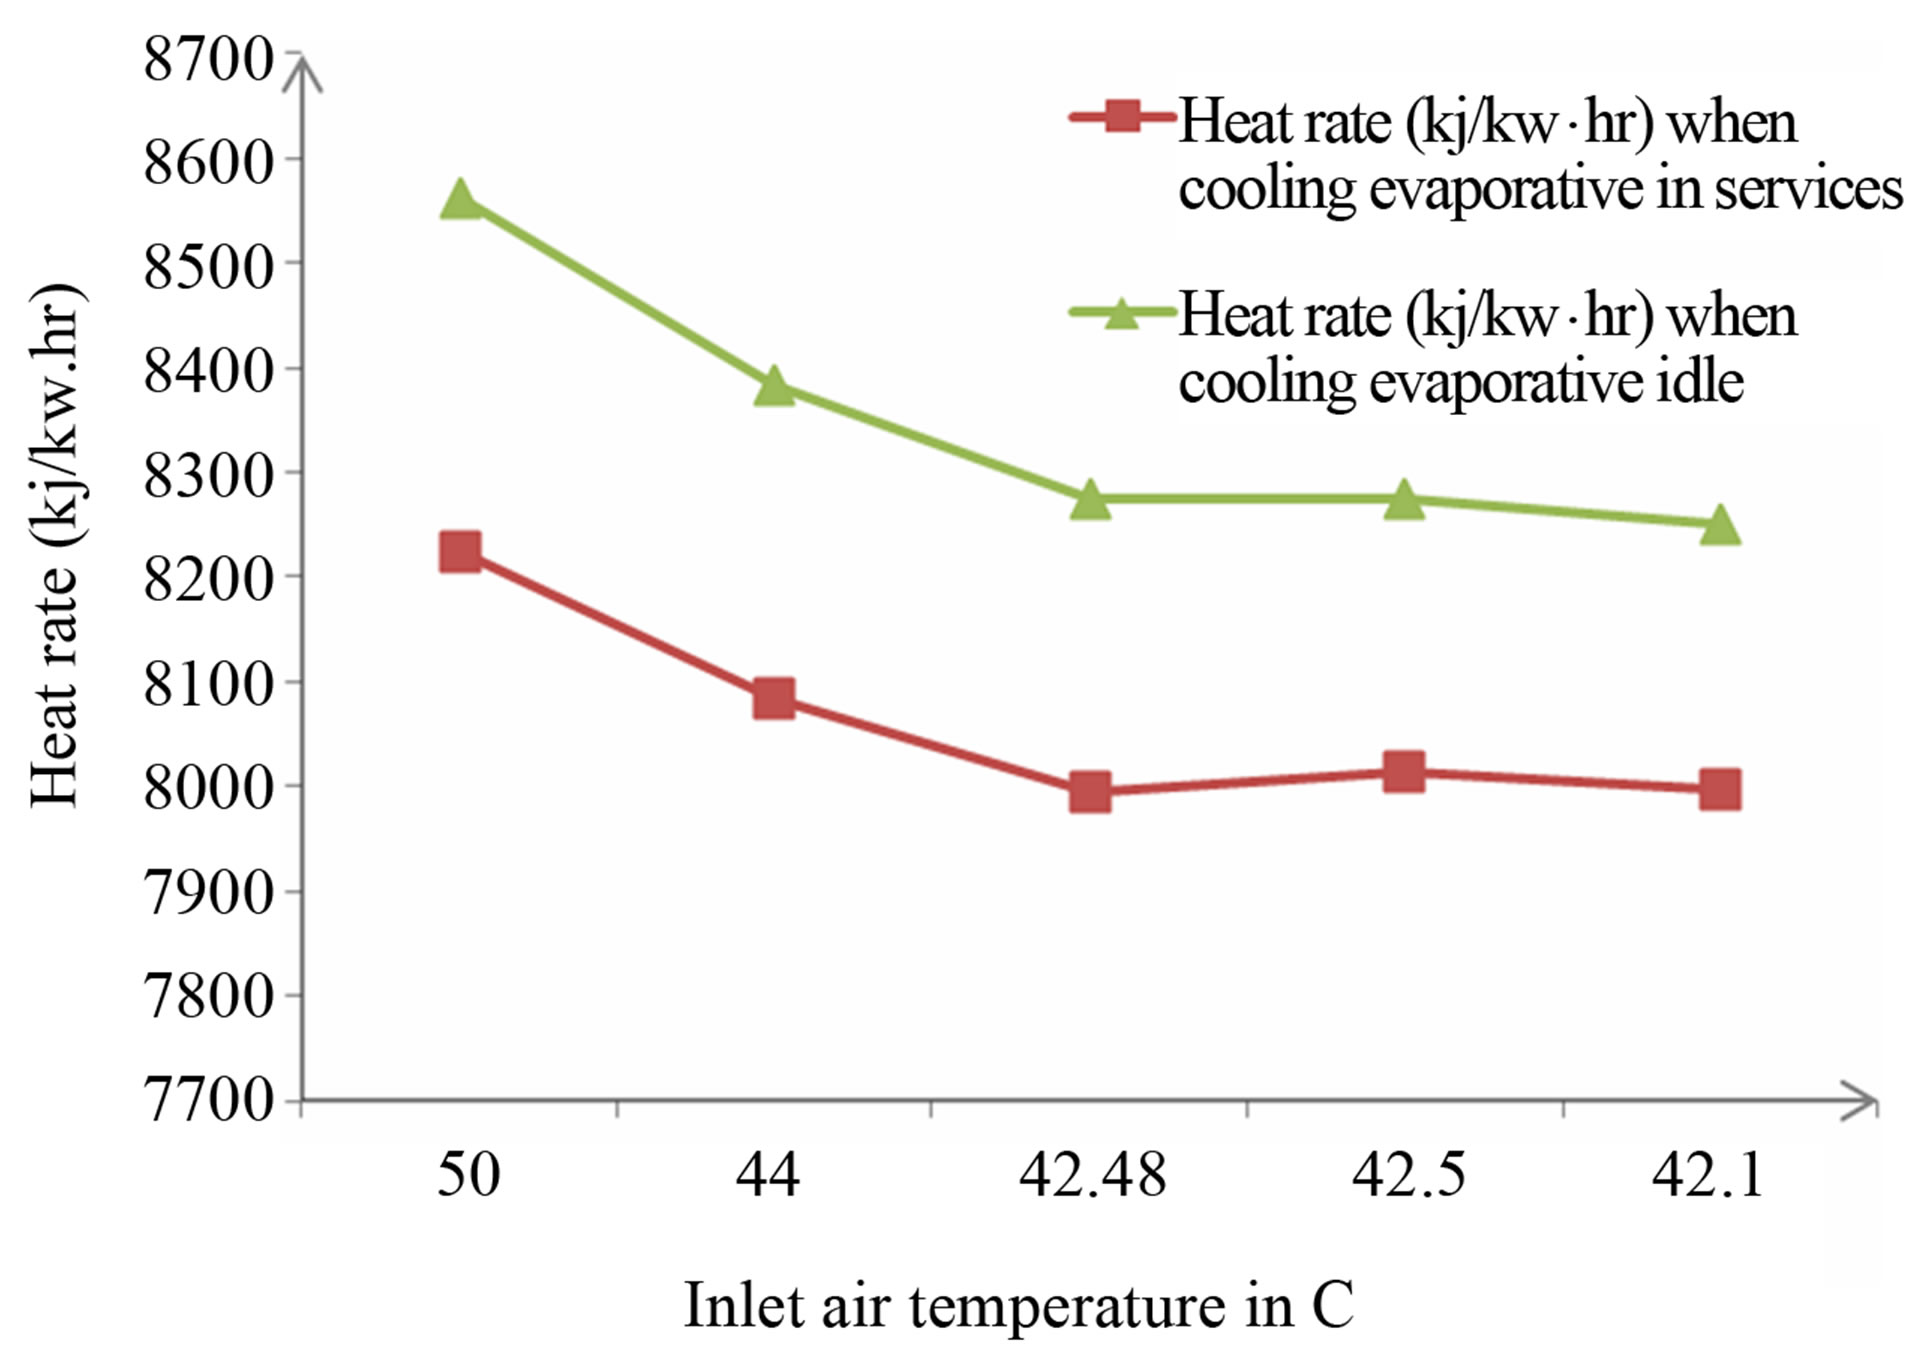 Studying The Role Played By Evaporative Cooler On Performance Of Combined Cycle Power Plant Ts Diagram Figure 10 Comparison Between Heat Rate In Kj Kwhr Versus Inlet Air Temp